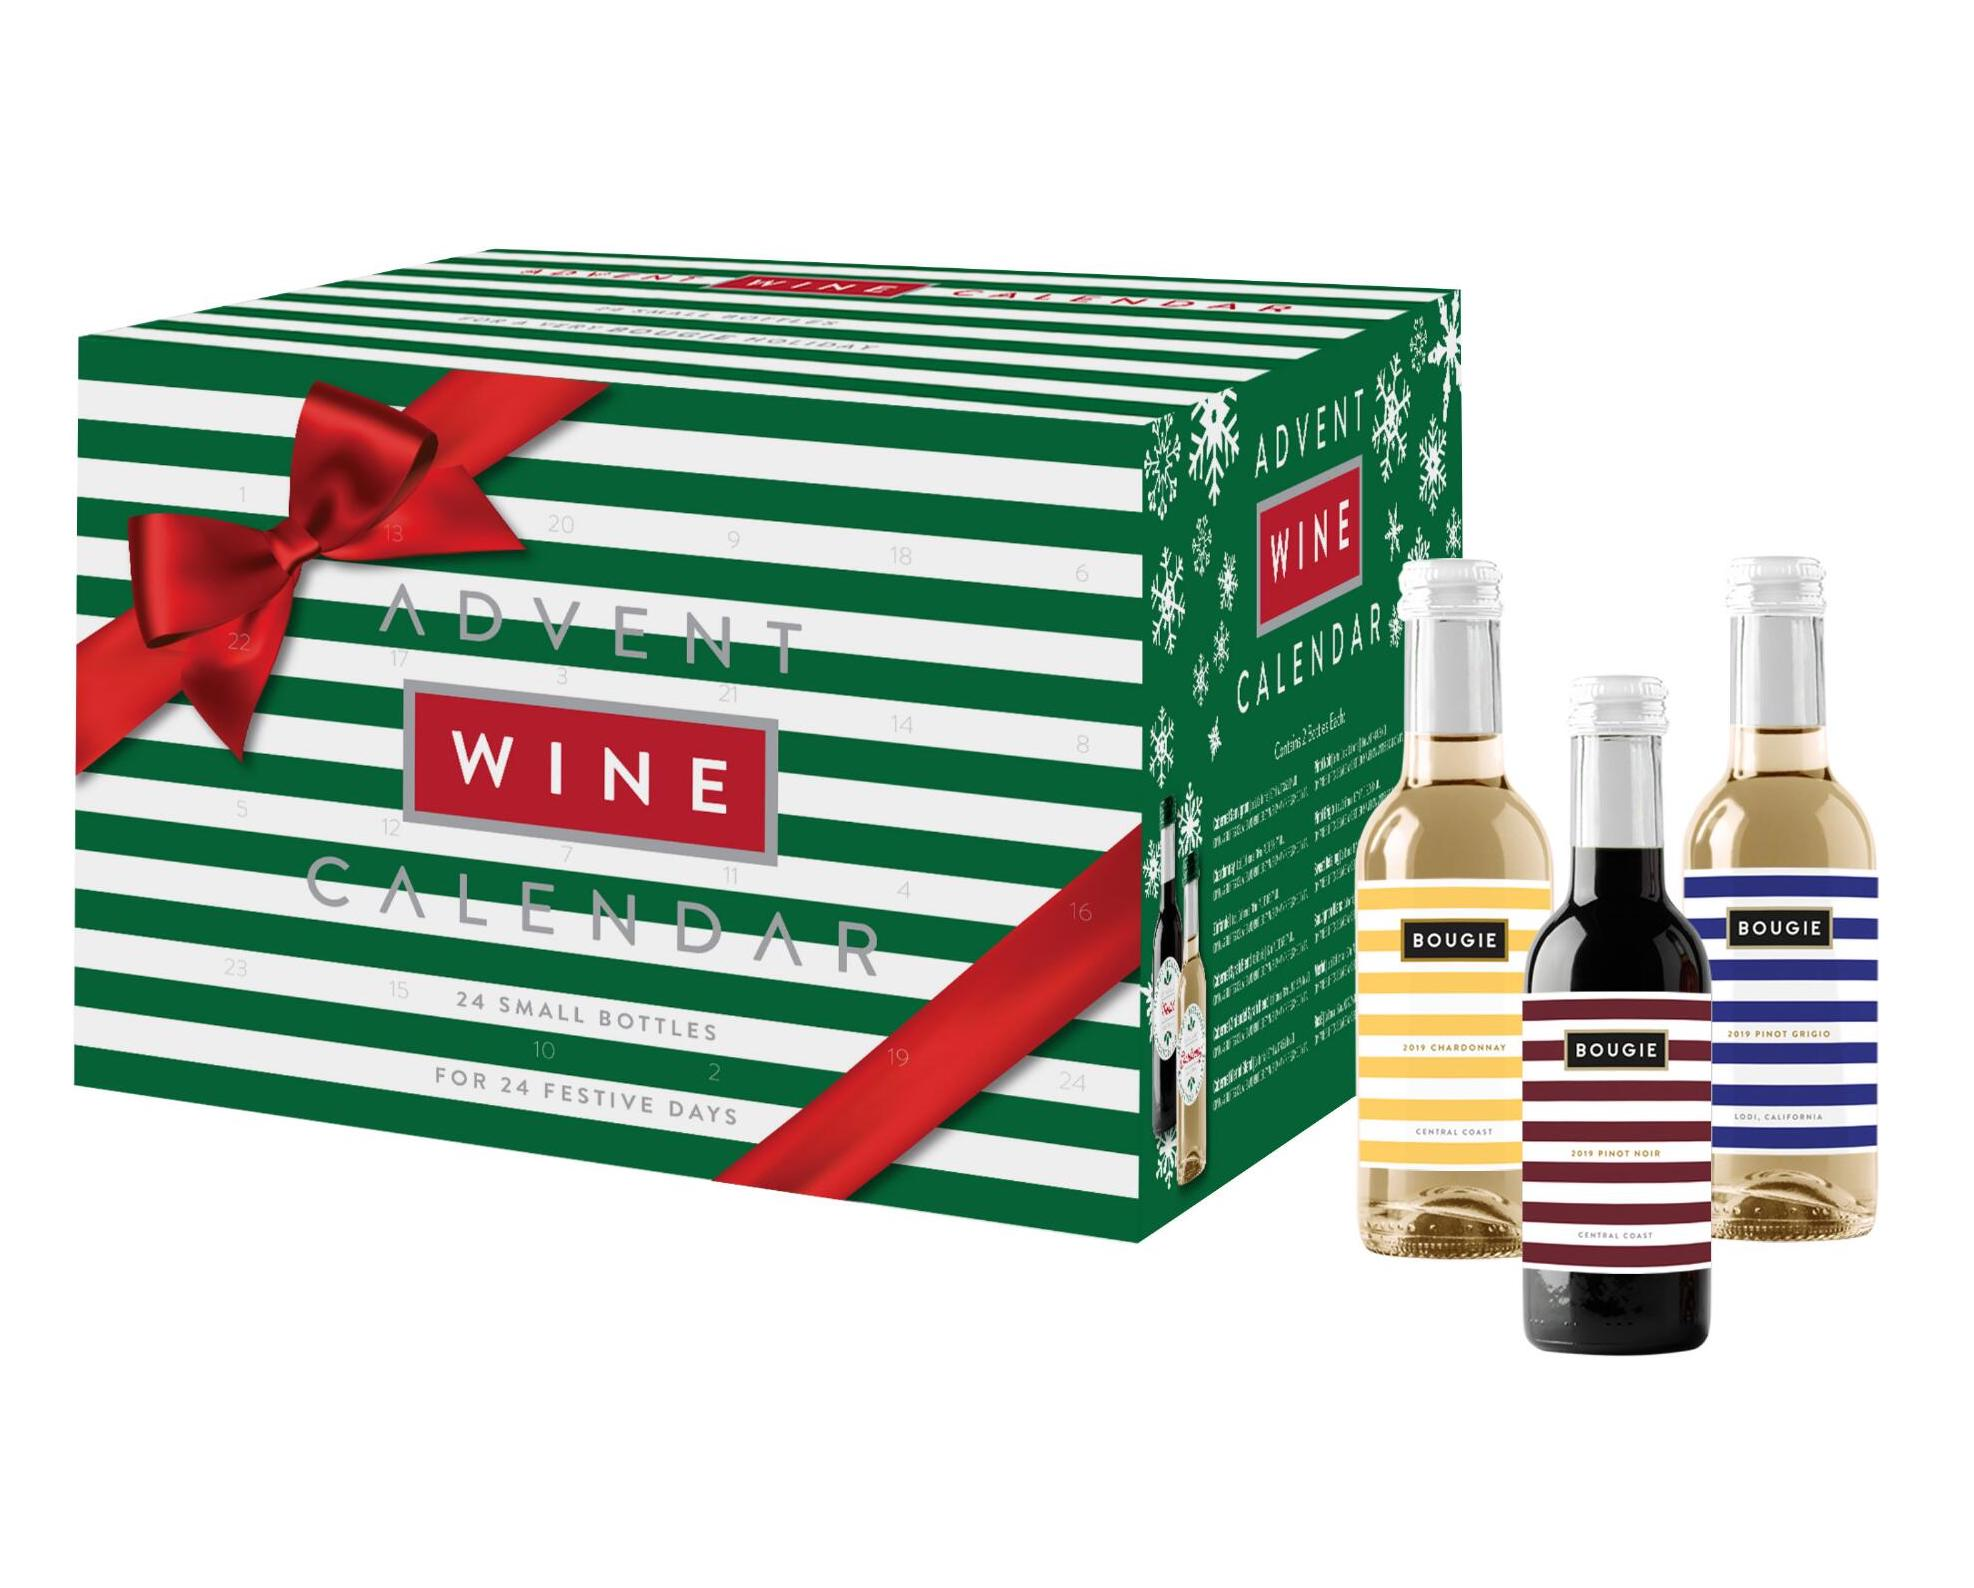 green and white striped box of wine advent calendar